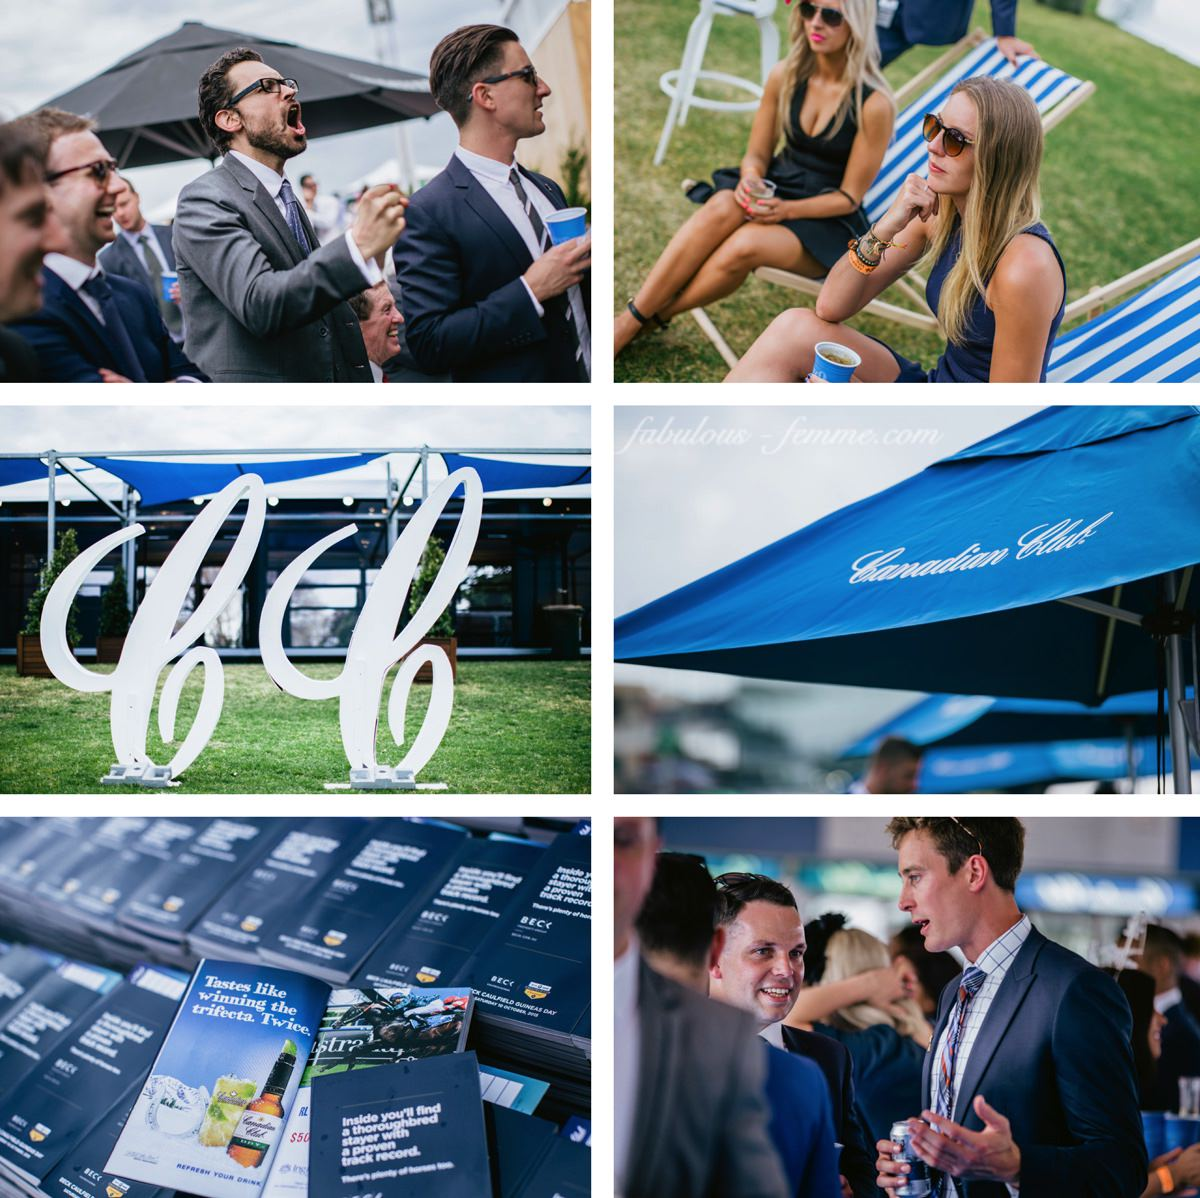 best event photography in melbourne - events fun media pr public relations